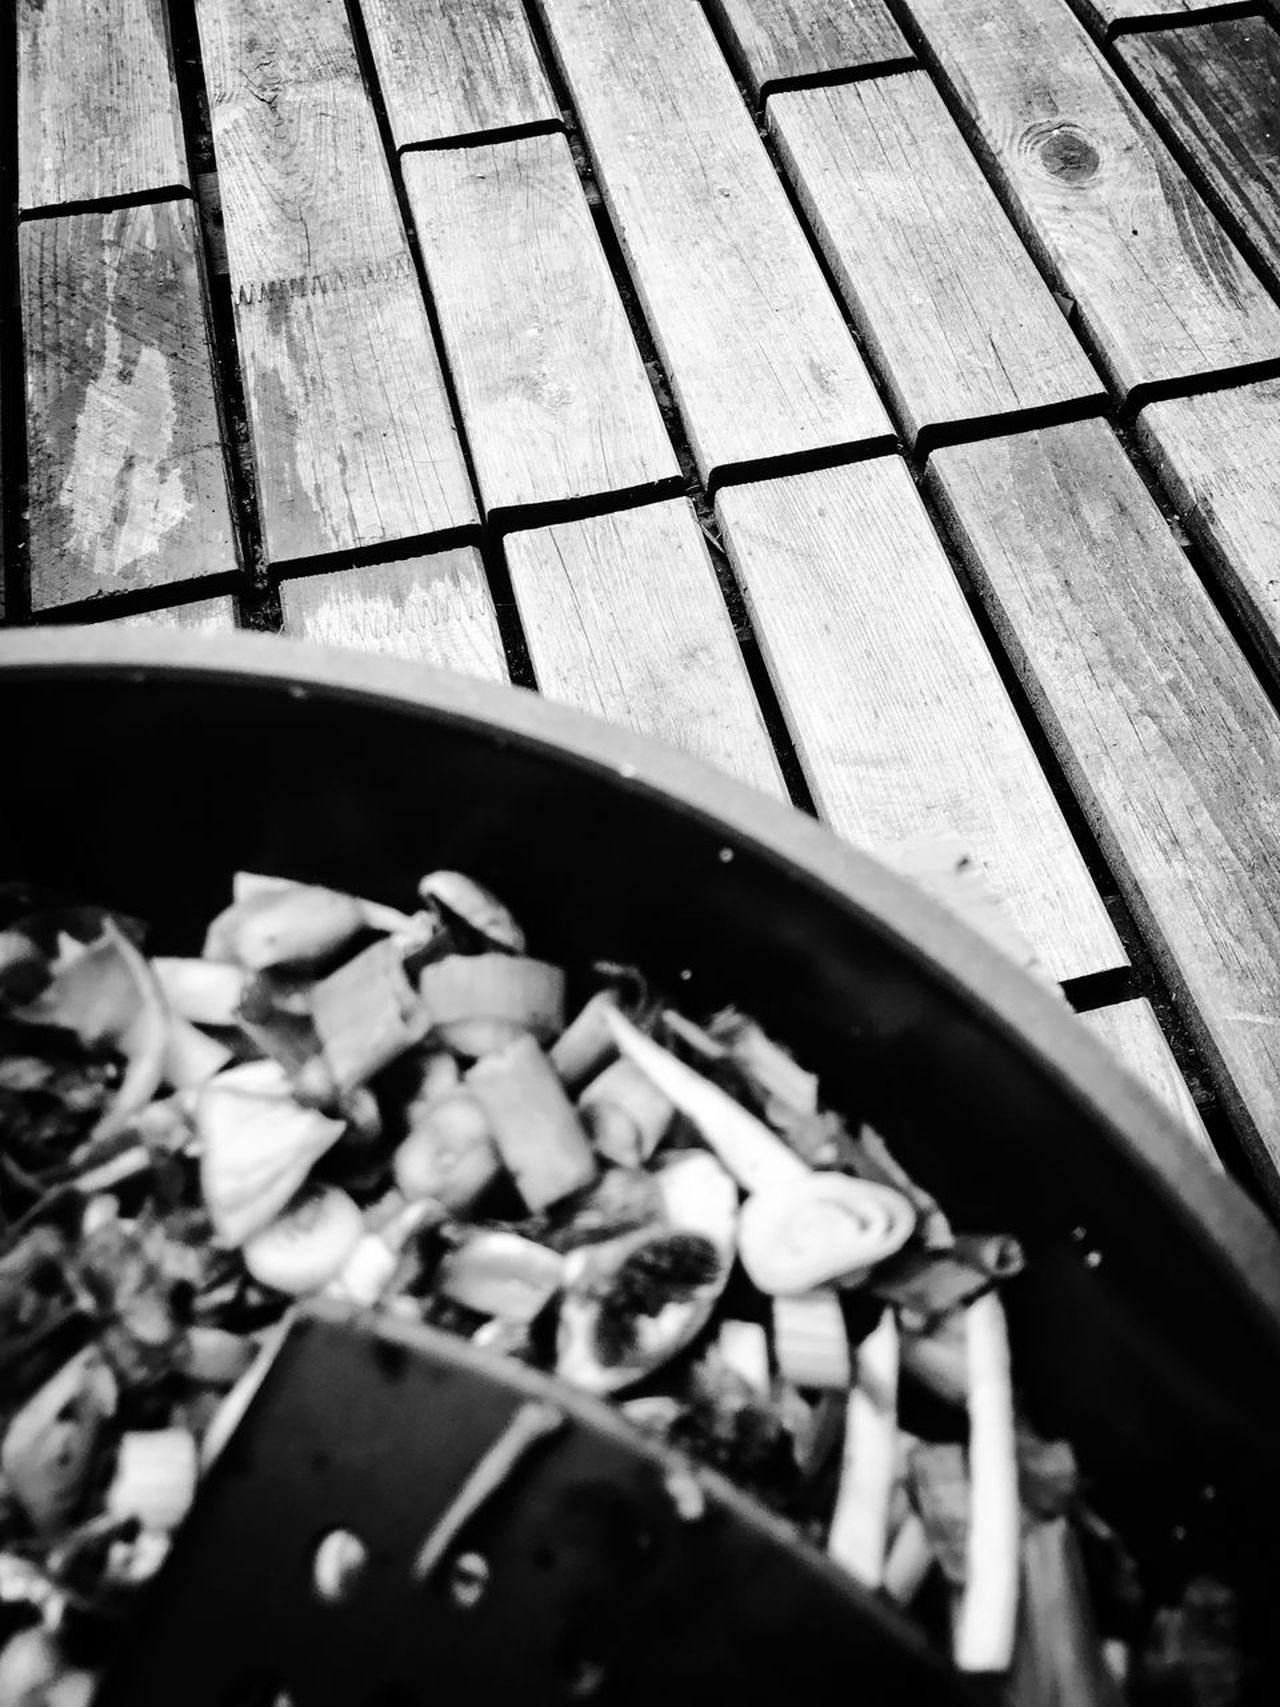 Ashtray  Bad Habit Close-up Day Food High Angle View Indoors  No People